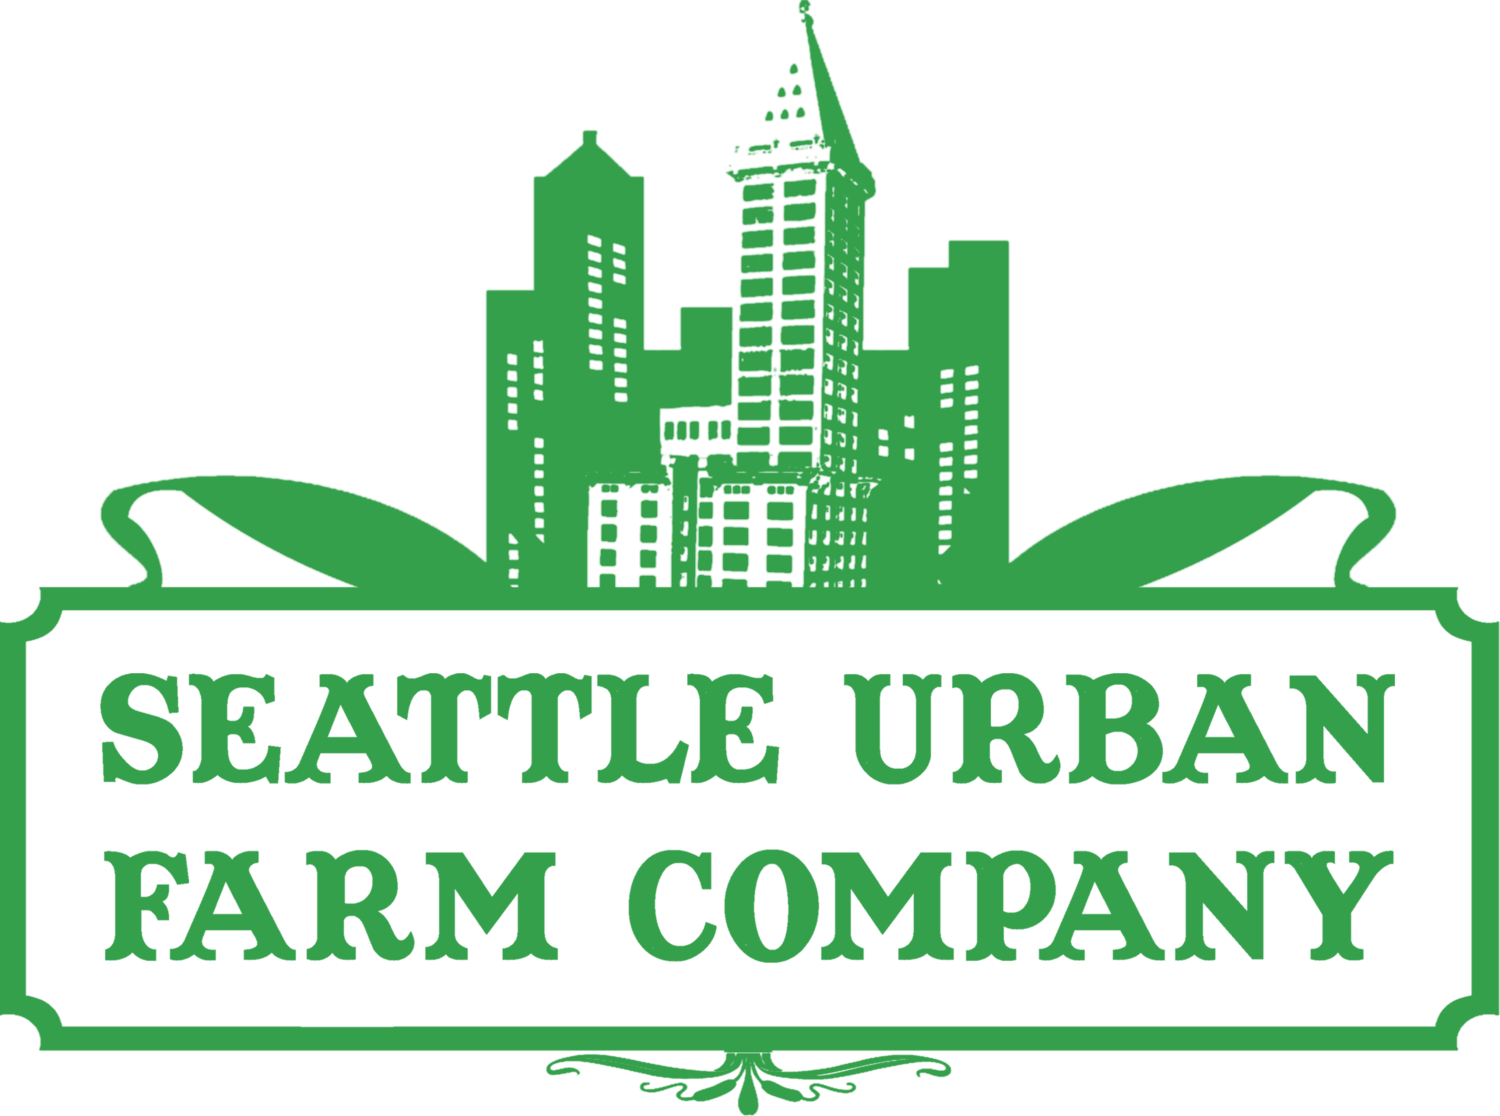 Seattle Urban Farm Company